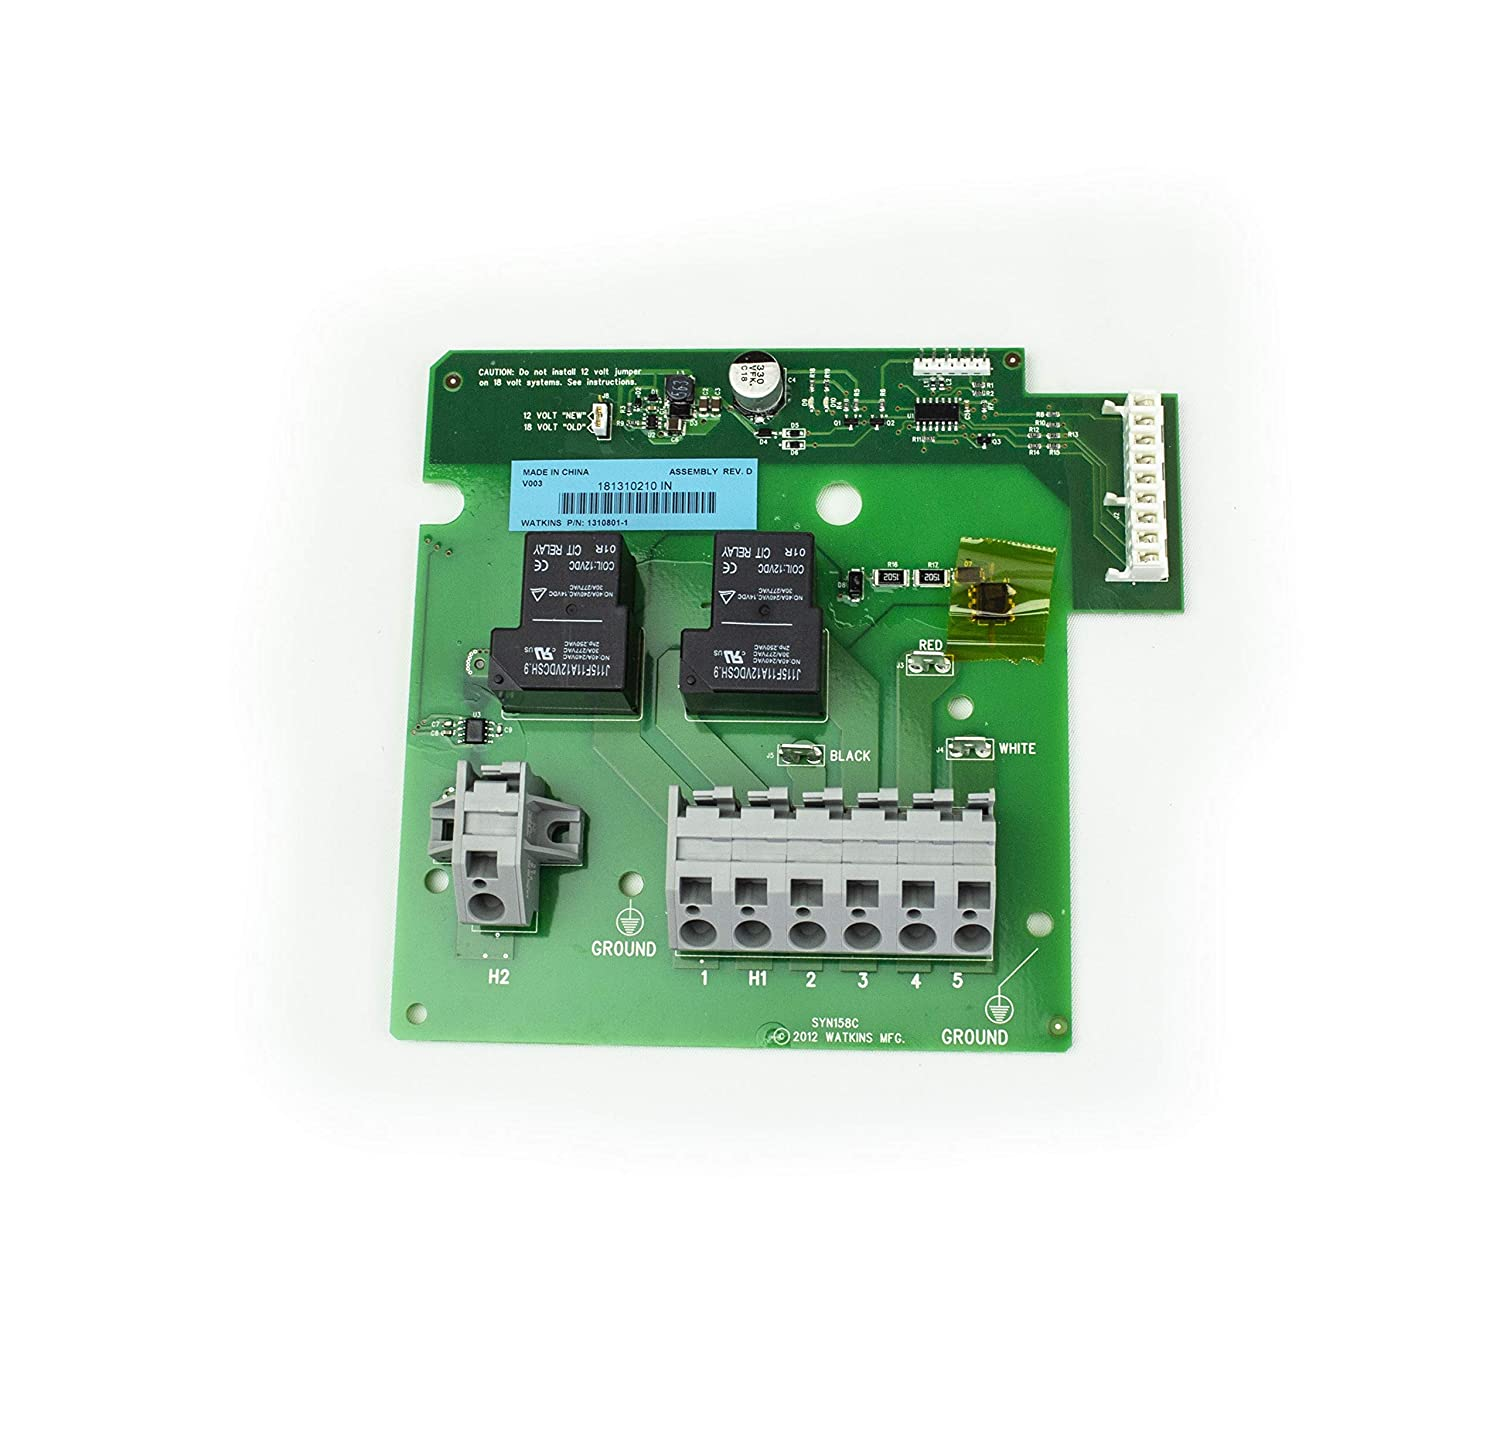 Best Upright Freezer 2020 Amazon.: Hot Springs Heater Relay Board 77119 (Formerly 74618